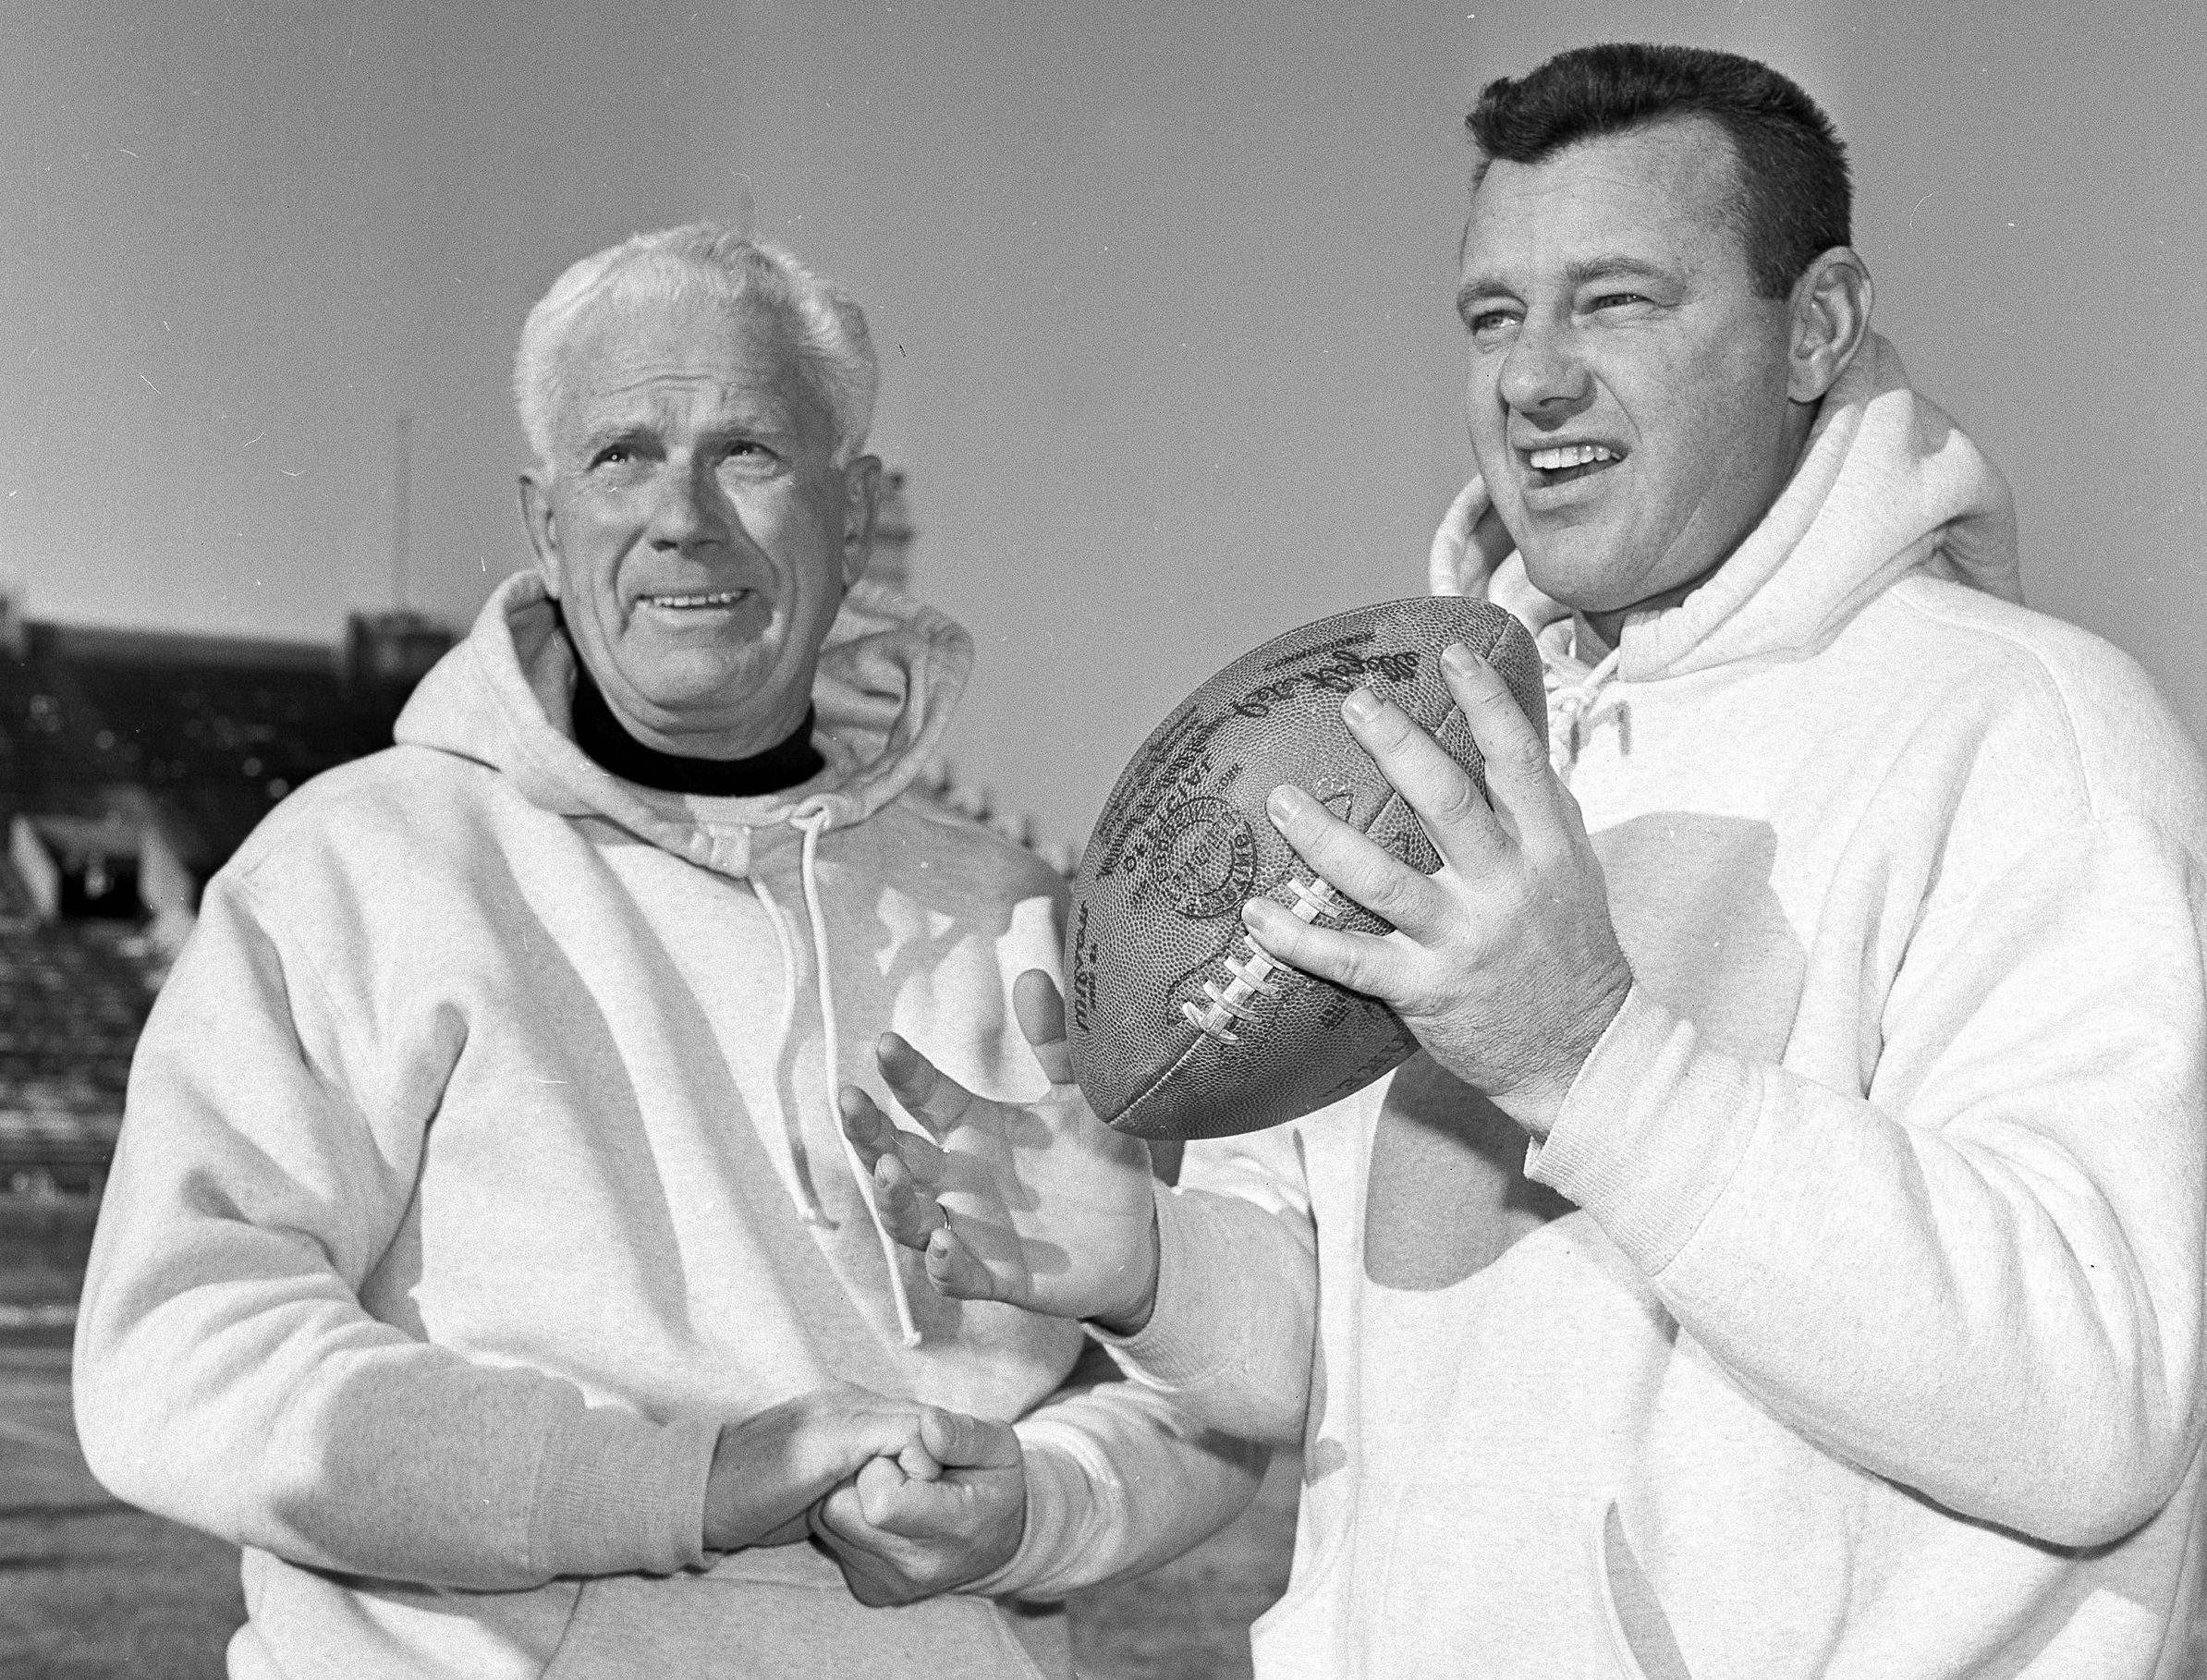 Eagles quarterback Norm Van Brocklin, poses with coach Buck Shaw during a workout in December 1960, in preparation for the title game against the Green Bay Packers.